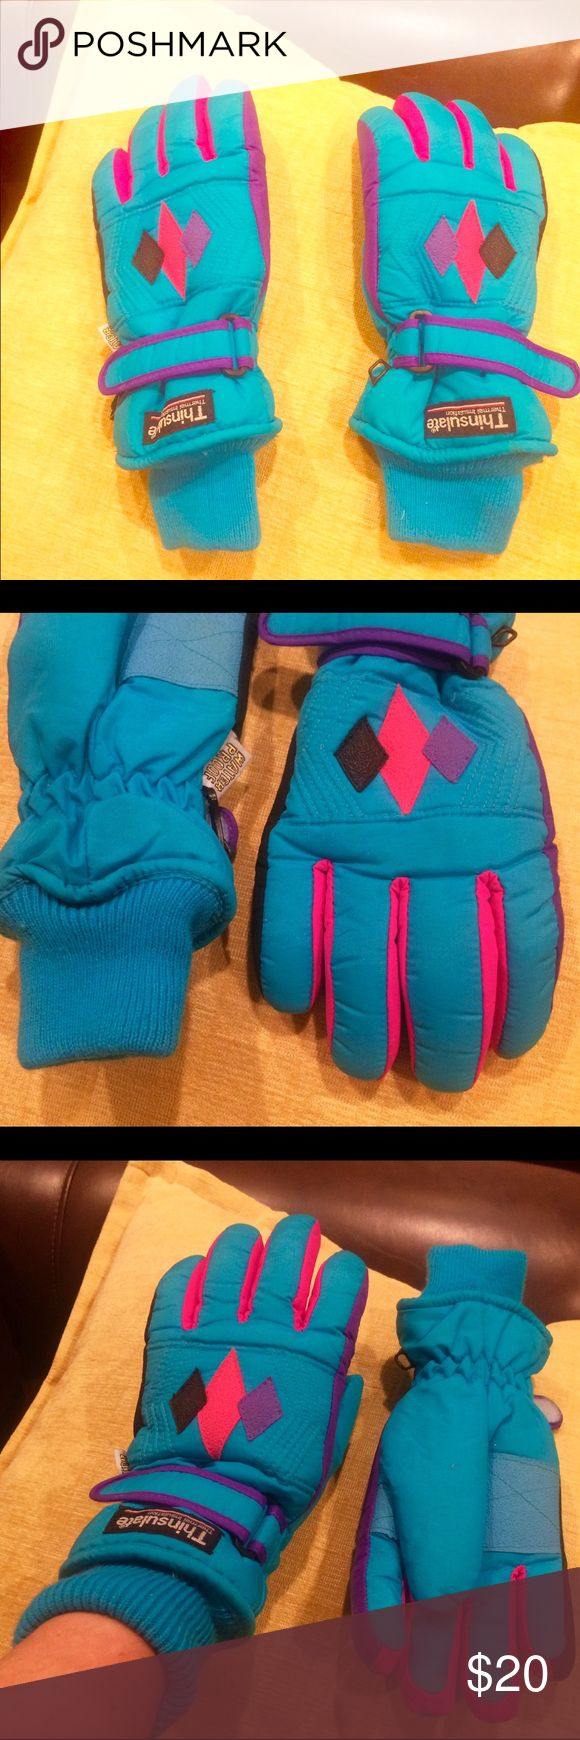 THINSULATE SNOW GLOVES - WATERPROOF! Excellent waterproof thinsulate gloves! Turquoise/pink/purple. Warm and waterproof! Thermal insulation. Amazing for snow/rain/skiing/sports, etc! thinsulate Accessories Gloves & Mittens